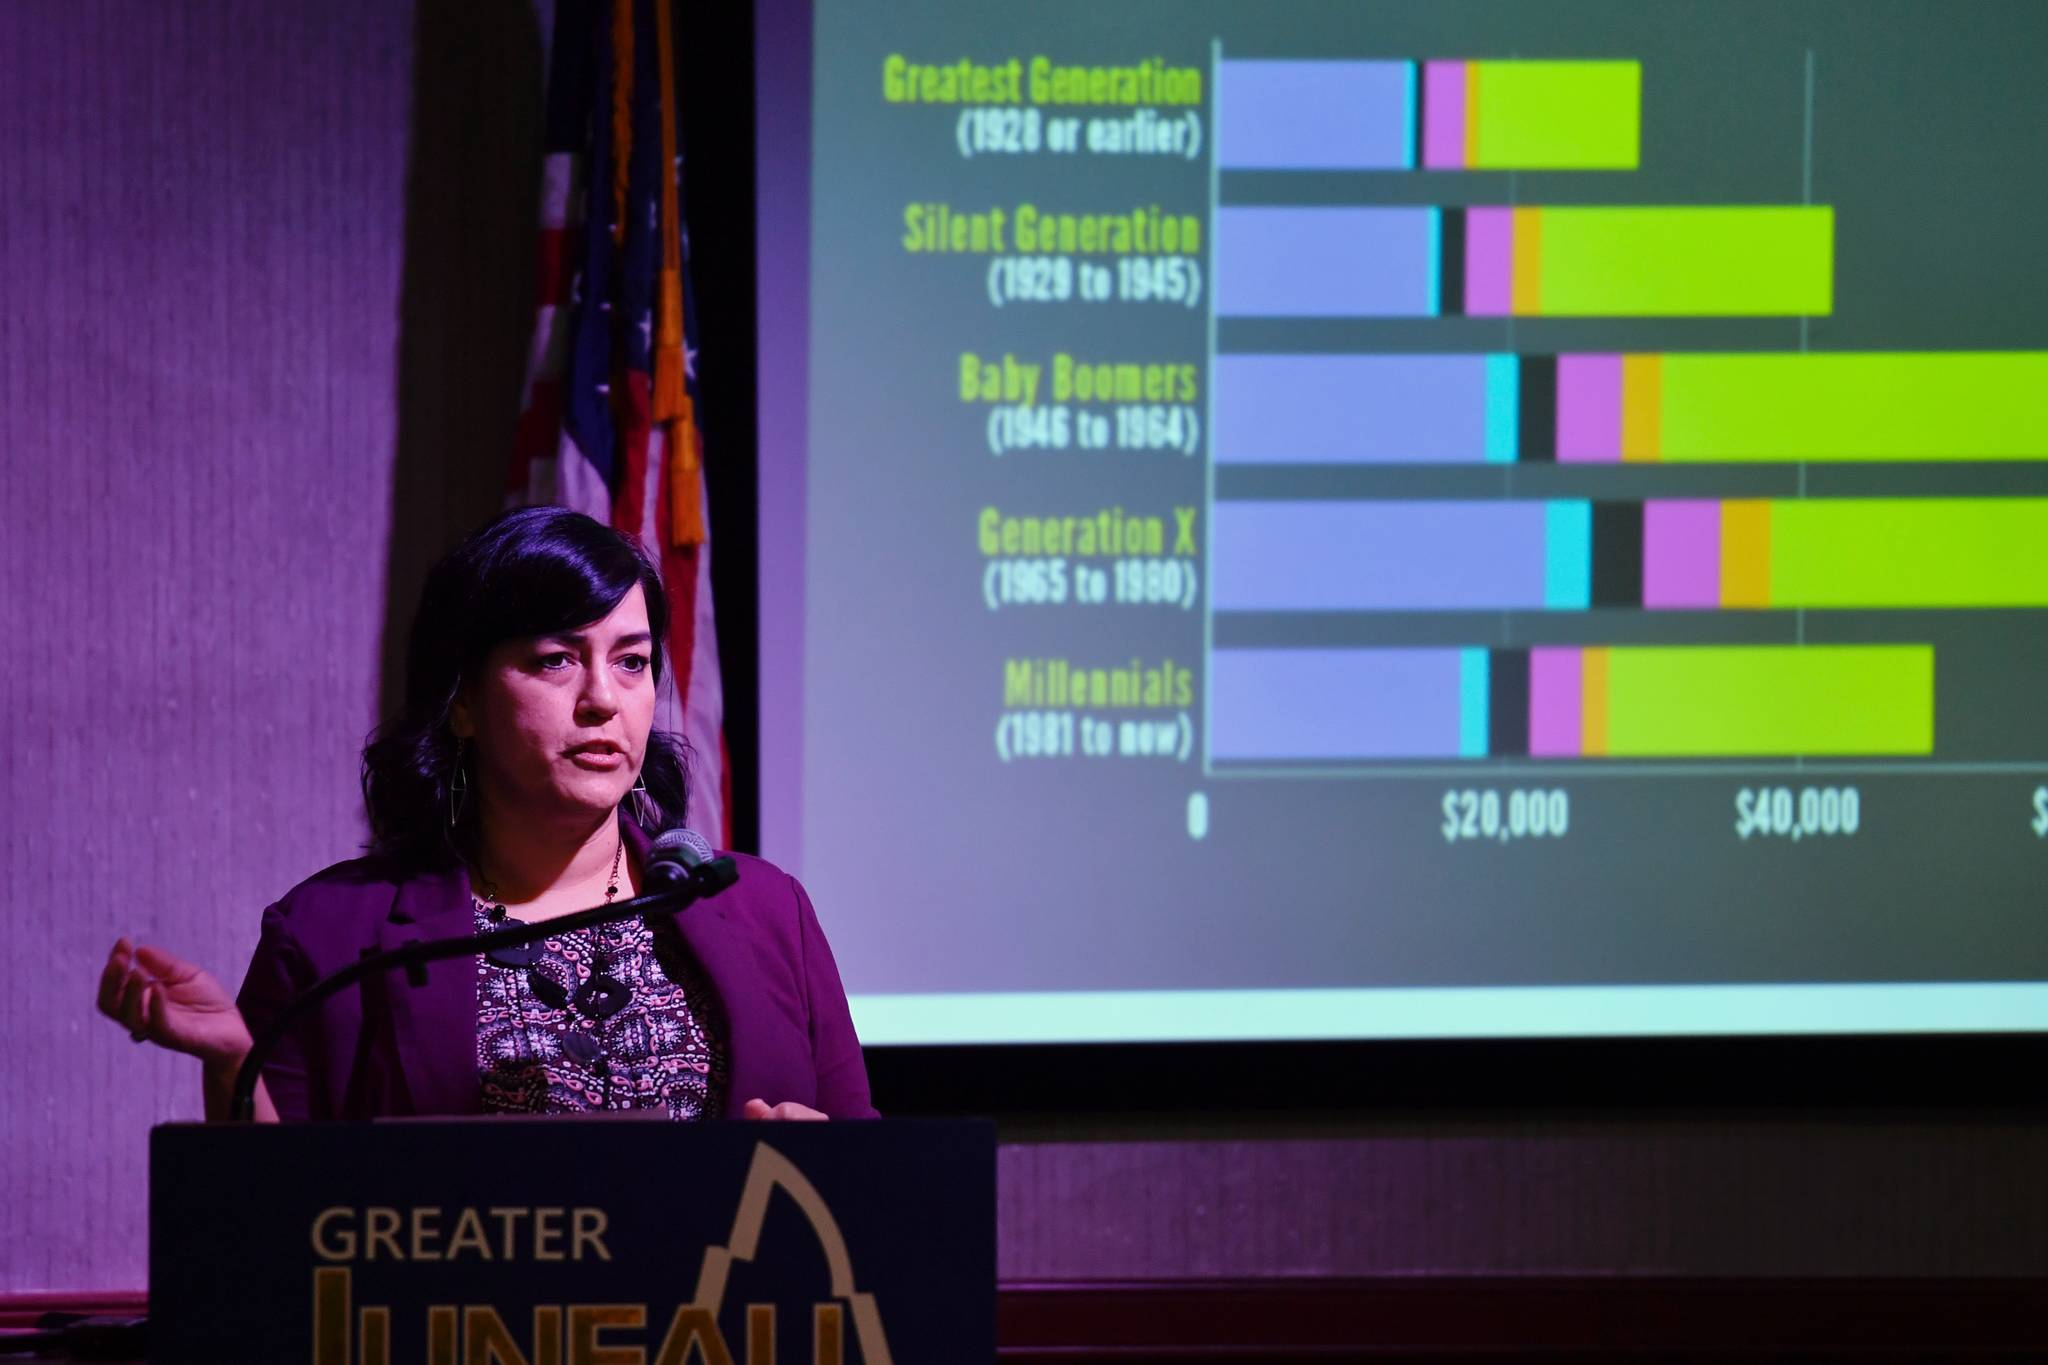 Jennifer Adams, executive director of the Alaska Small Business Development Council, speaks about hot business trends to the Juneau Chamber of Commerce during its weekly luncheon at the Hangar Ballroom on Thursday, March 14, 2019. (Michael Penn | Juneau Empire)